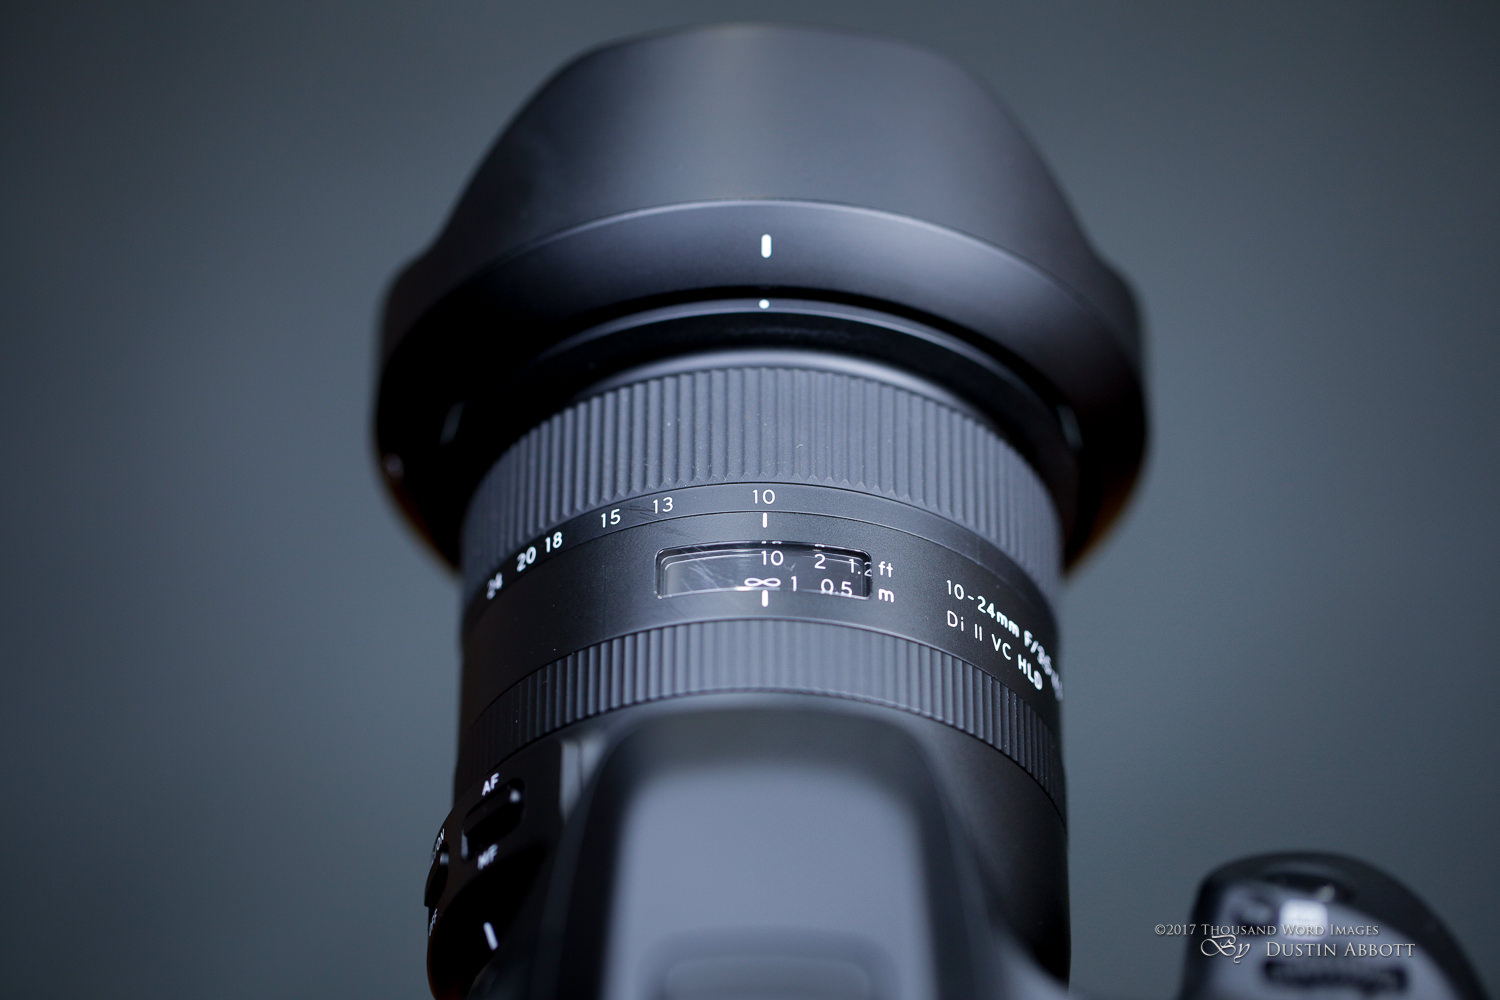 Tamron 10-24mm f/3 5-4 5 Di II VC HLD Archives - DustinAbbott net